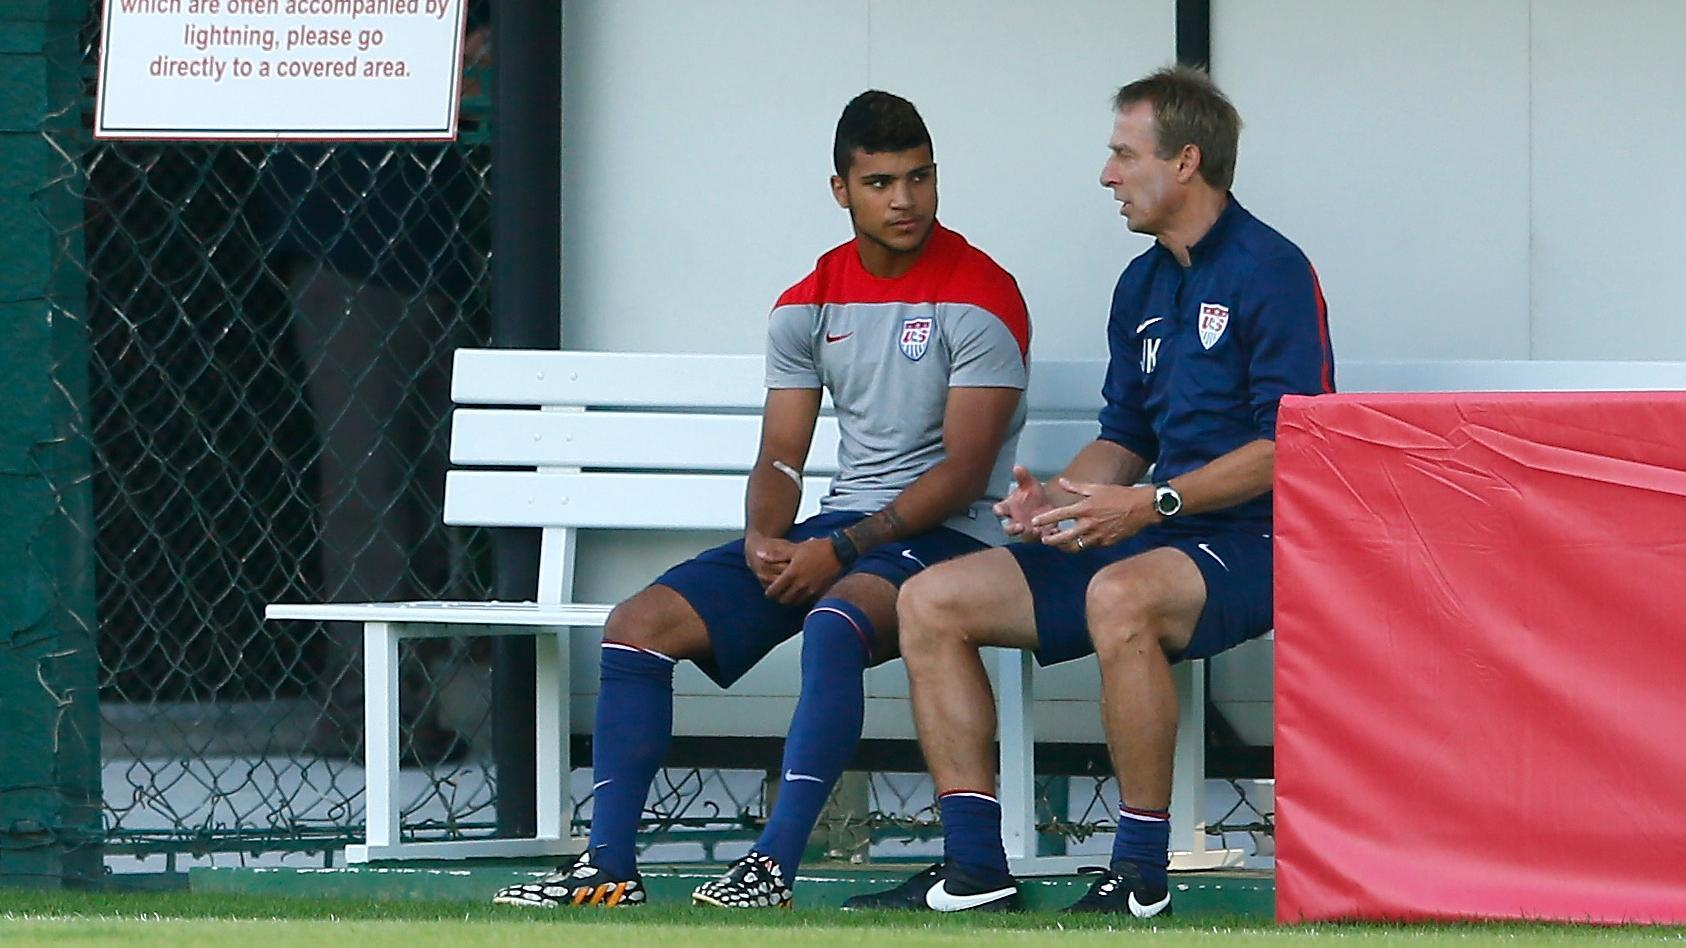 Klinsmann: It's an exciting time for U.S. soccer